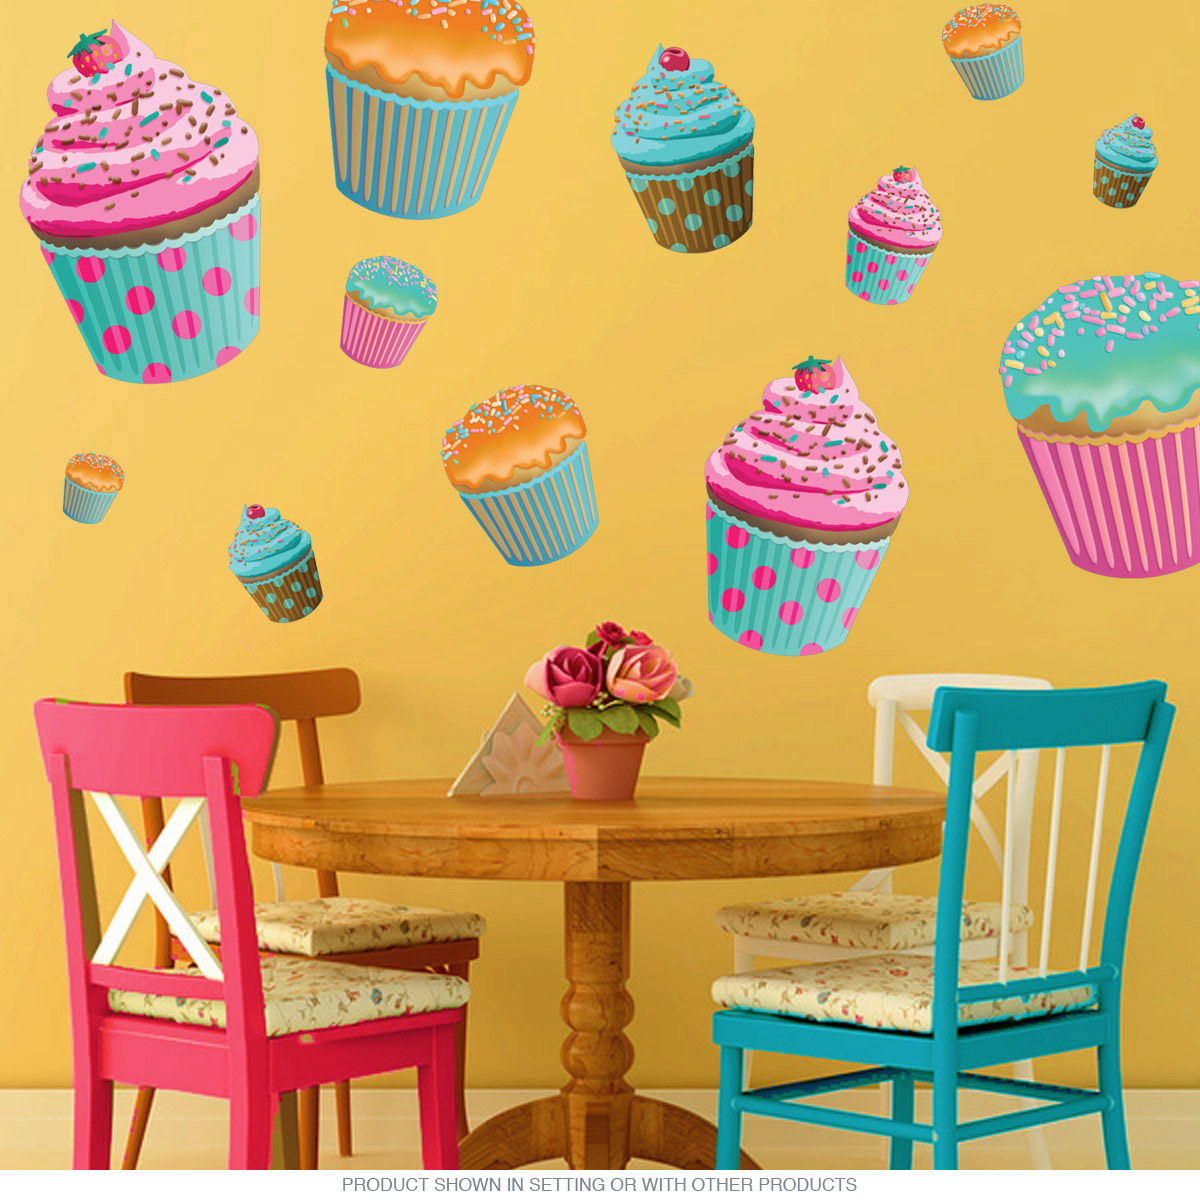 Chocolate Cupcake Wall Decal Pink | Bakery Wall Decor | RetroPlanet.com